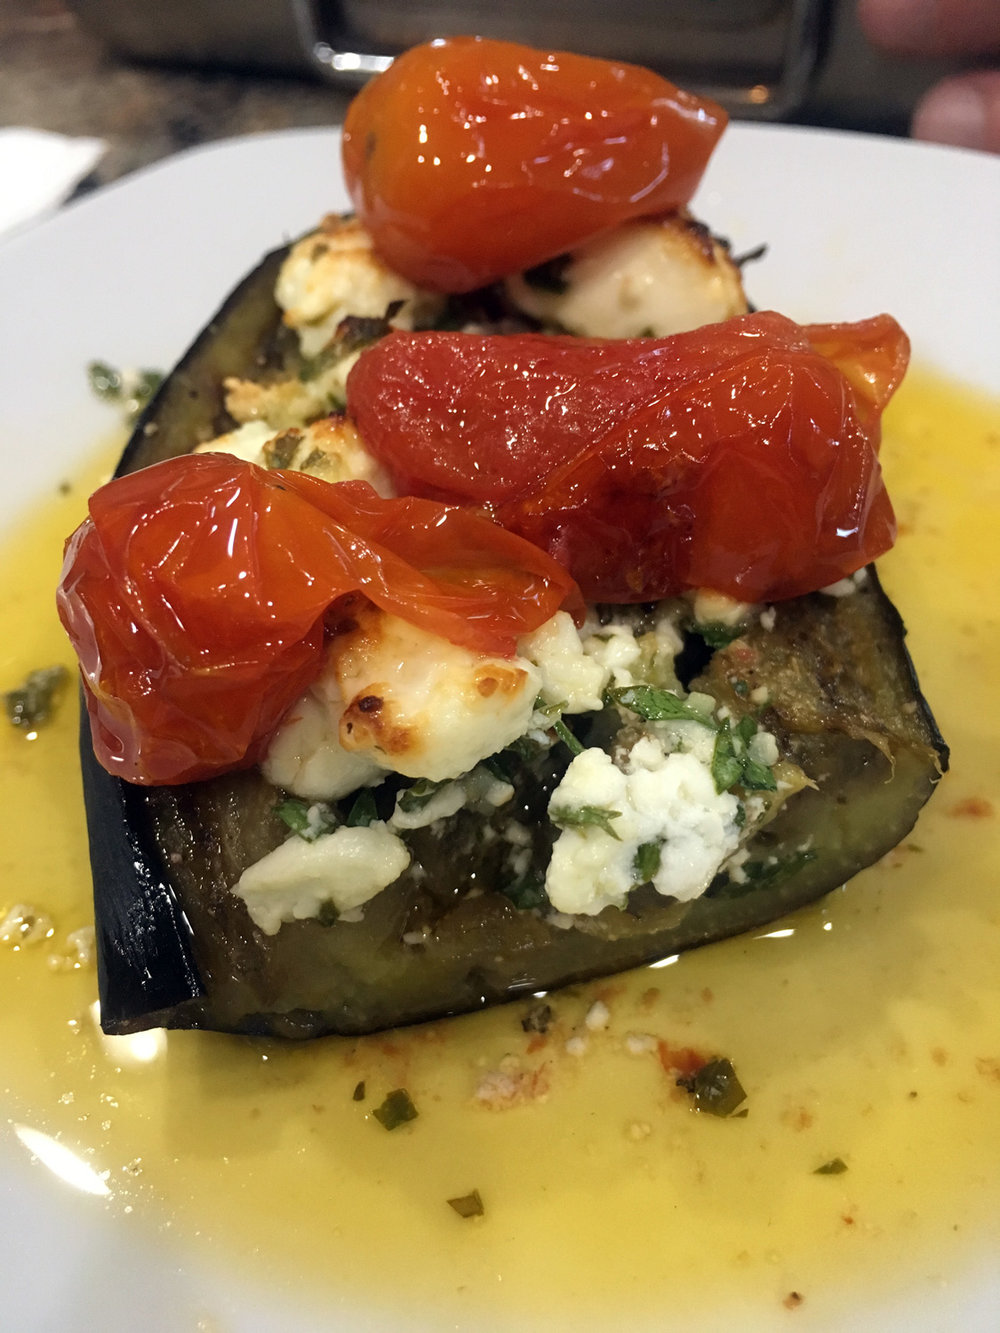 Roasted eggplant with  feta gremolata  and  roasted tomatoes .  Honestly, having a ton of roasted tomatoes in your fridge or freezer is your best secret weapon.  The dishes you can make are endless!